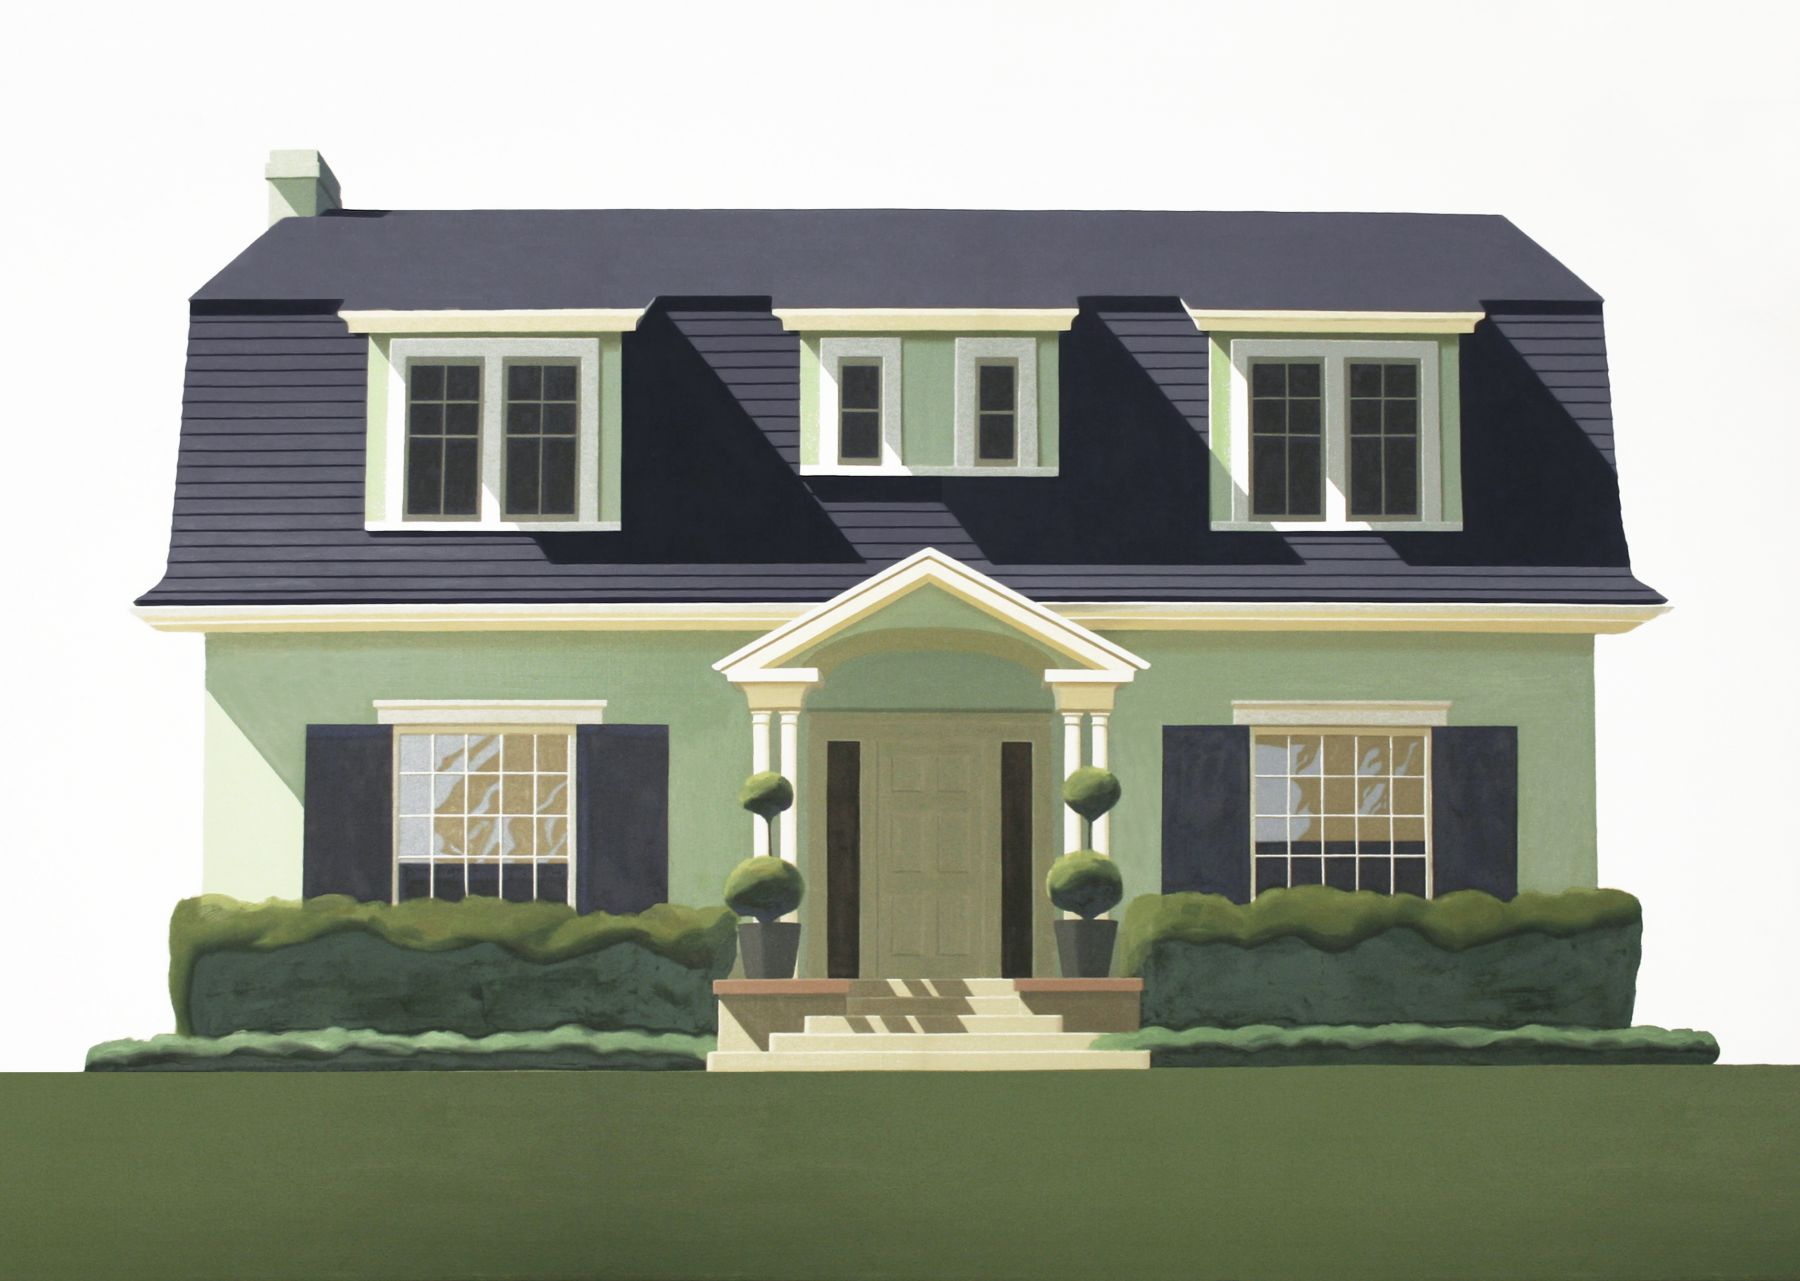 Robert Cottingham, House on Windsor (SOLD), 1969, oil on canvas, 51 x 72 inches